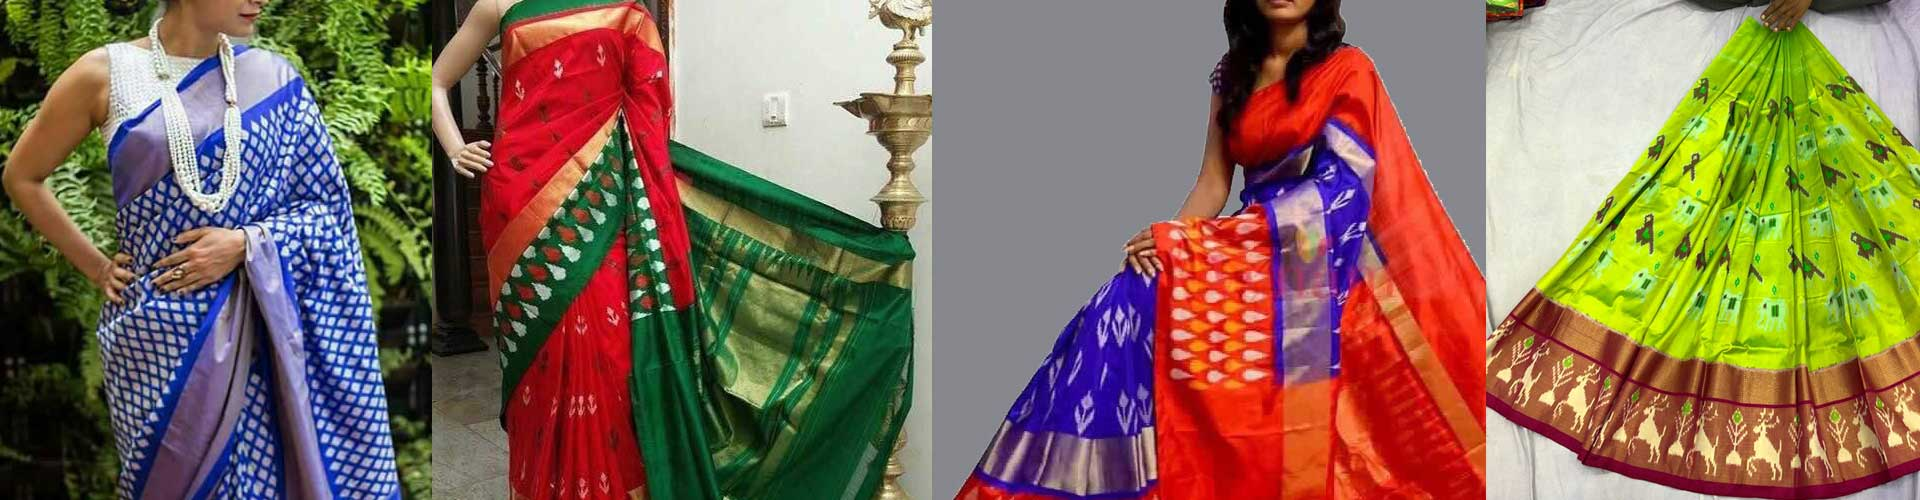 Ikkath Sarees - Banner Image